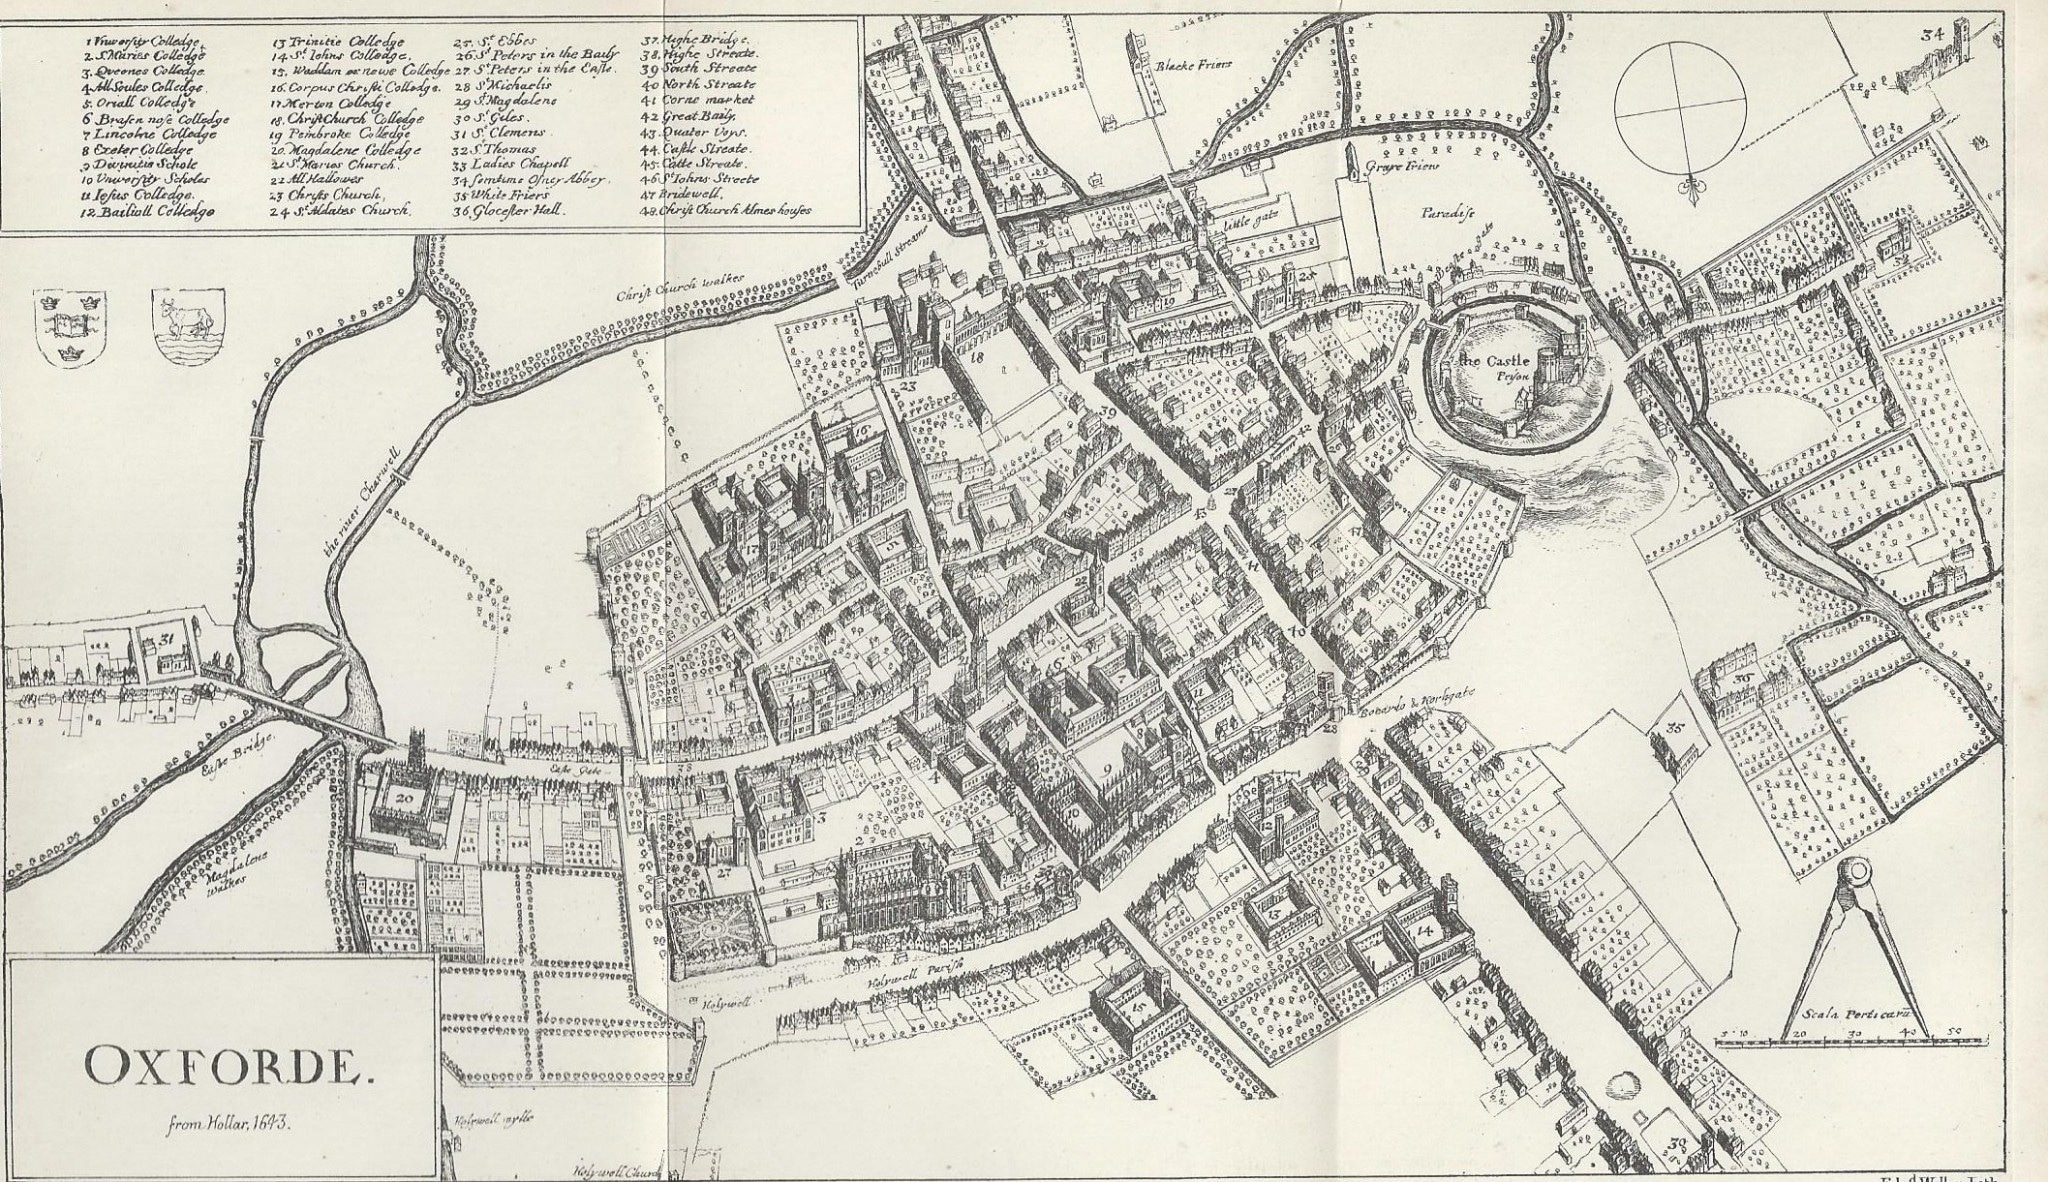 Old map of Oxford University and town dated 1643 17th Century